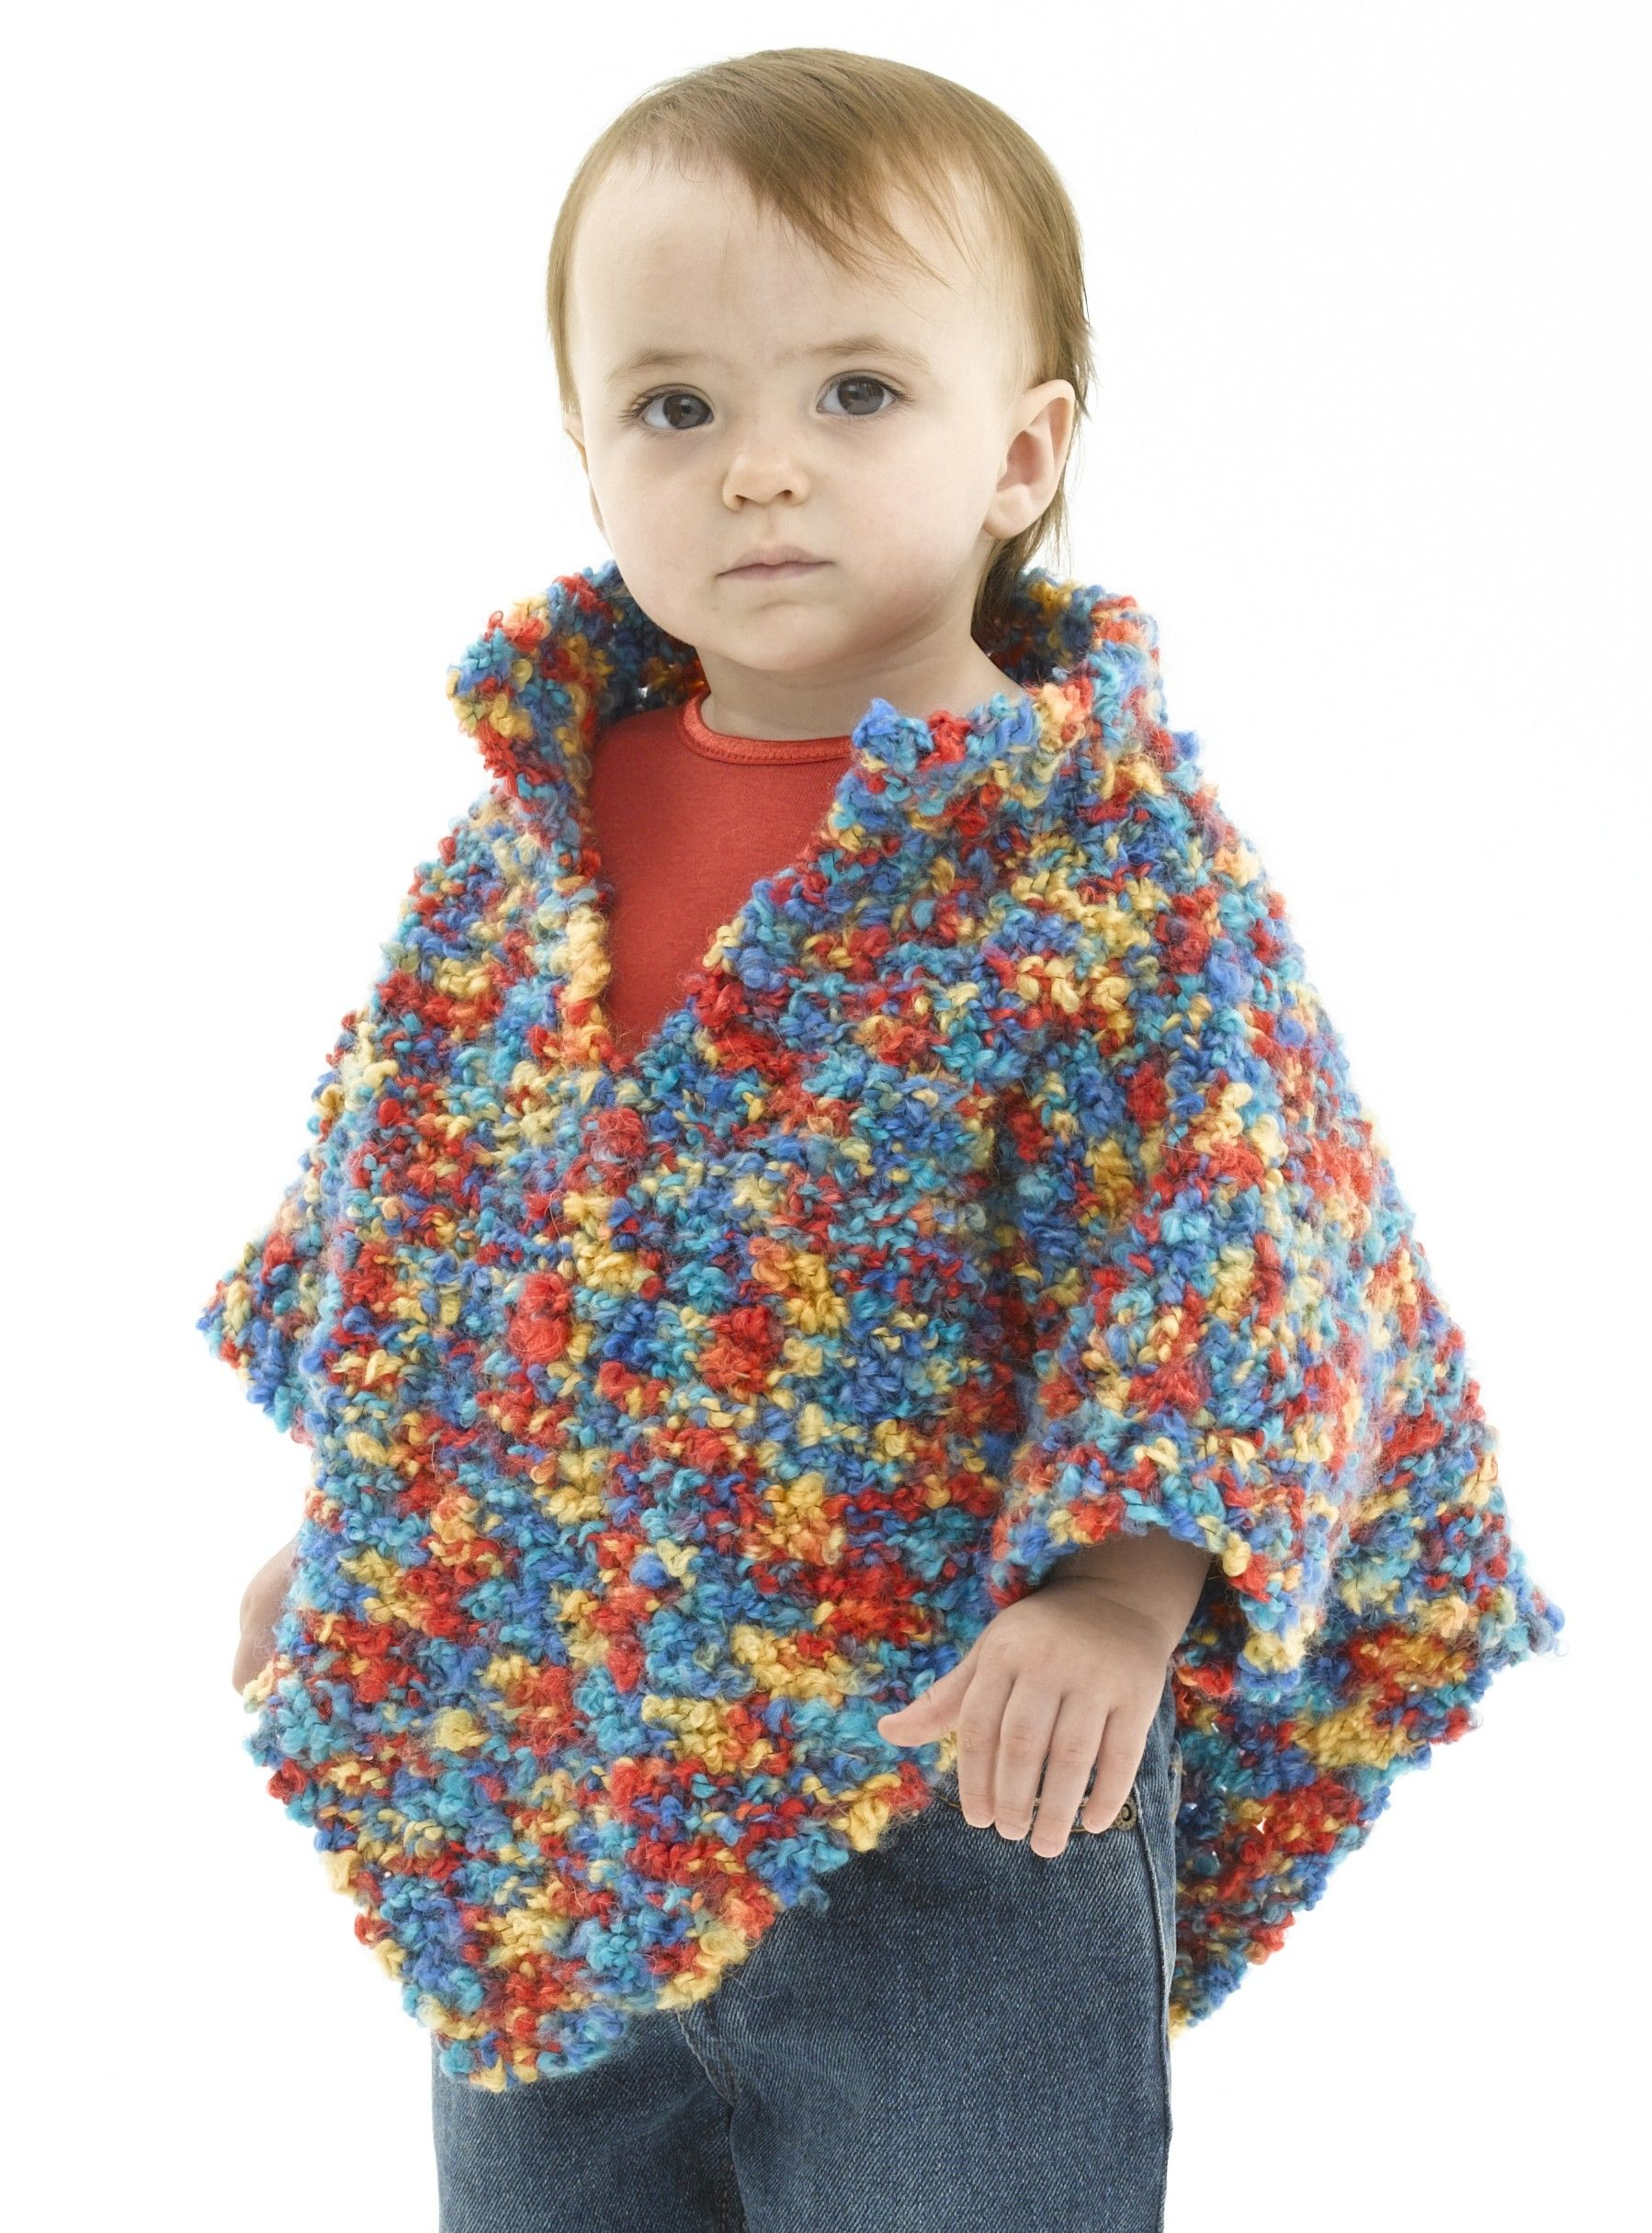 Free Knitting Pattern - Knitted Baby Poncho - Lion Brand Yarn ...